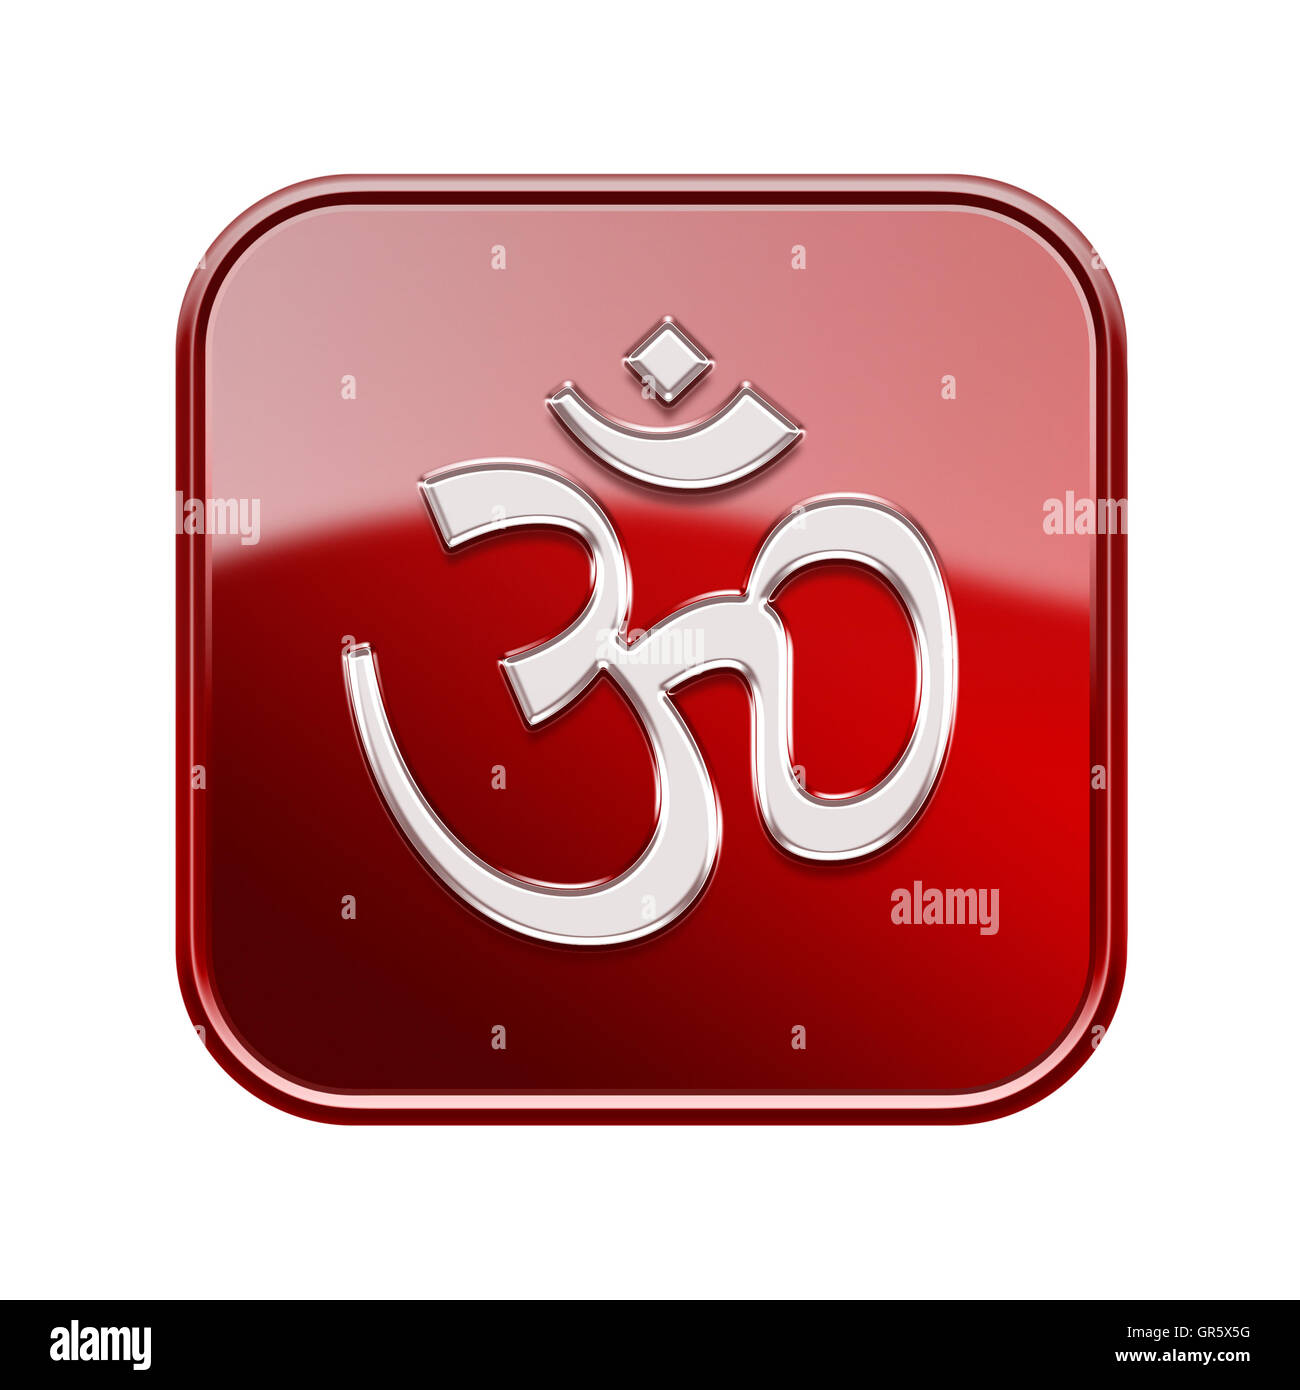 Om Symbol icon glossy red, isolated on white background - Stock Image